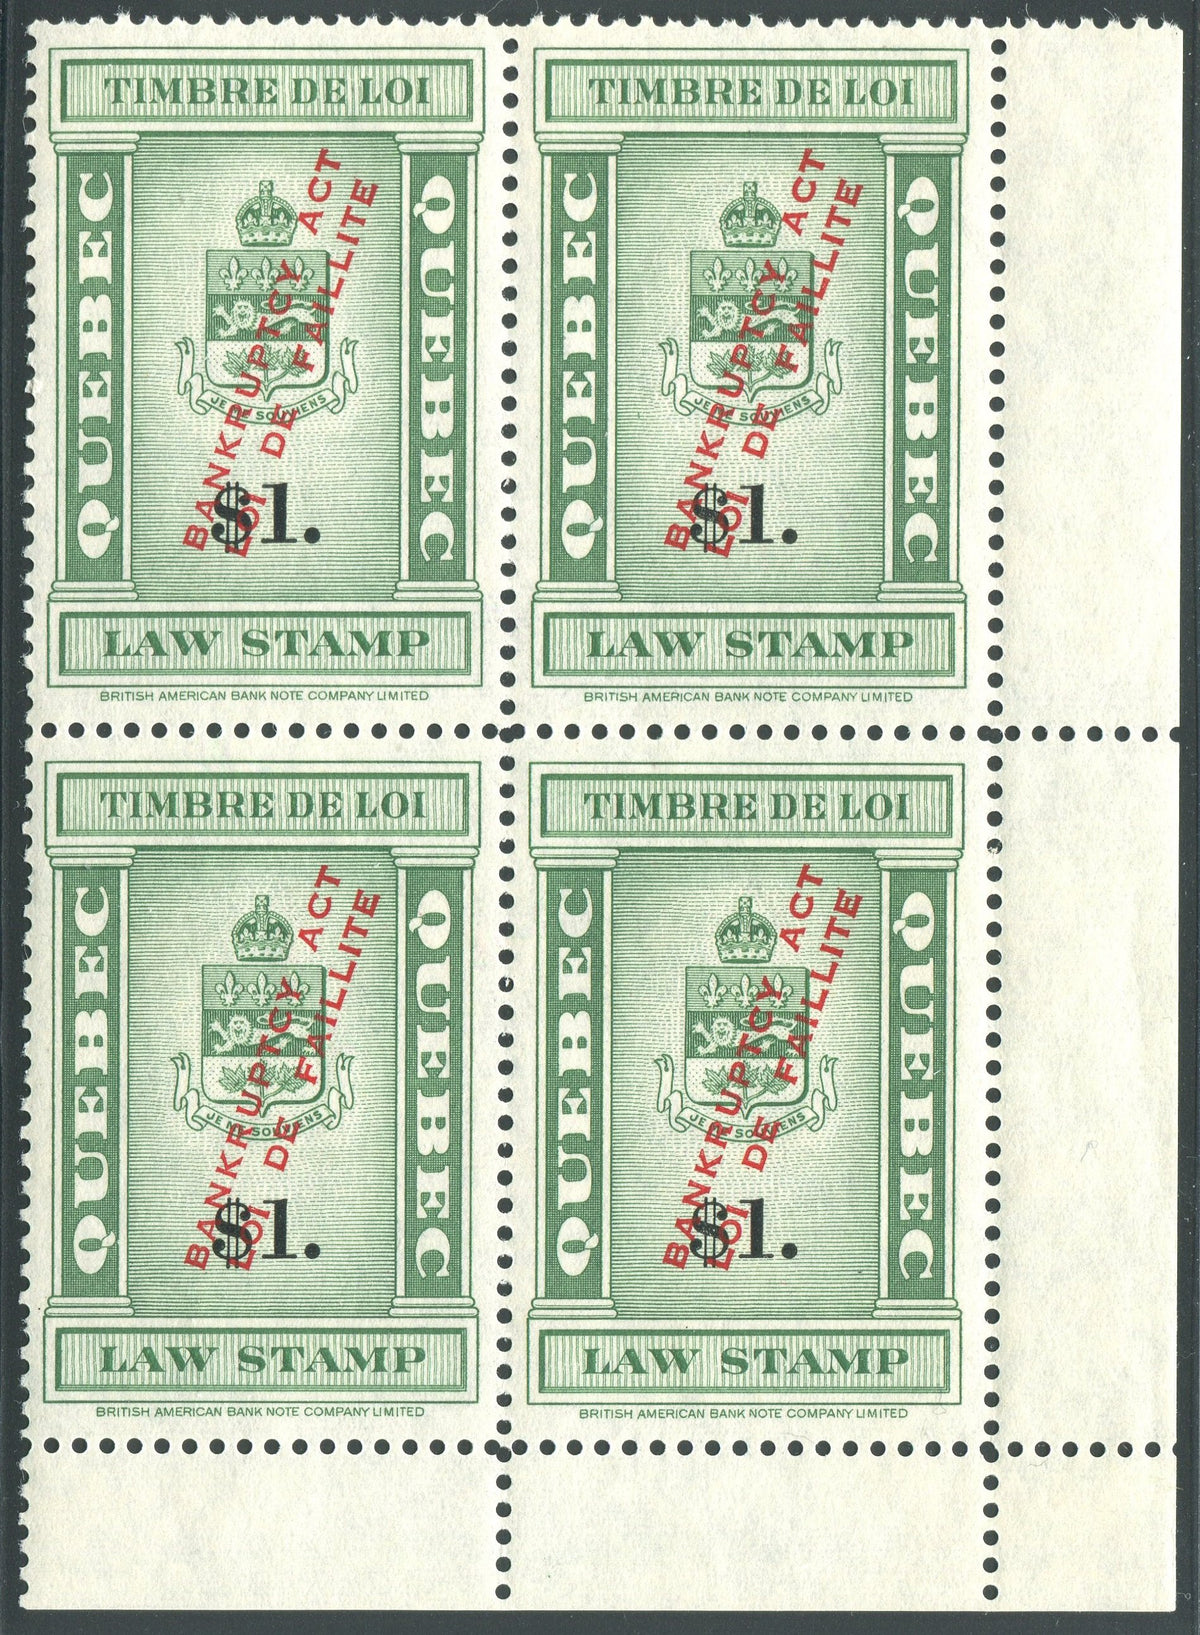 0119QL1708 - QL119 - Mint Block of 4